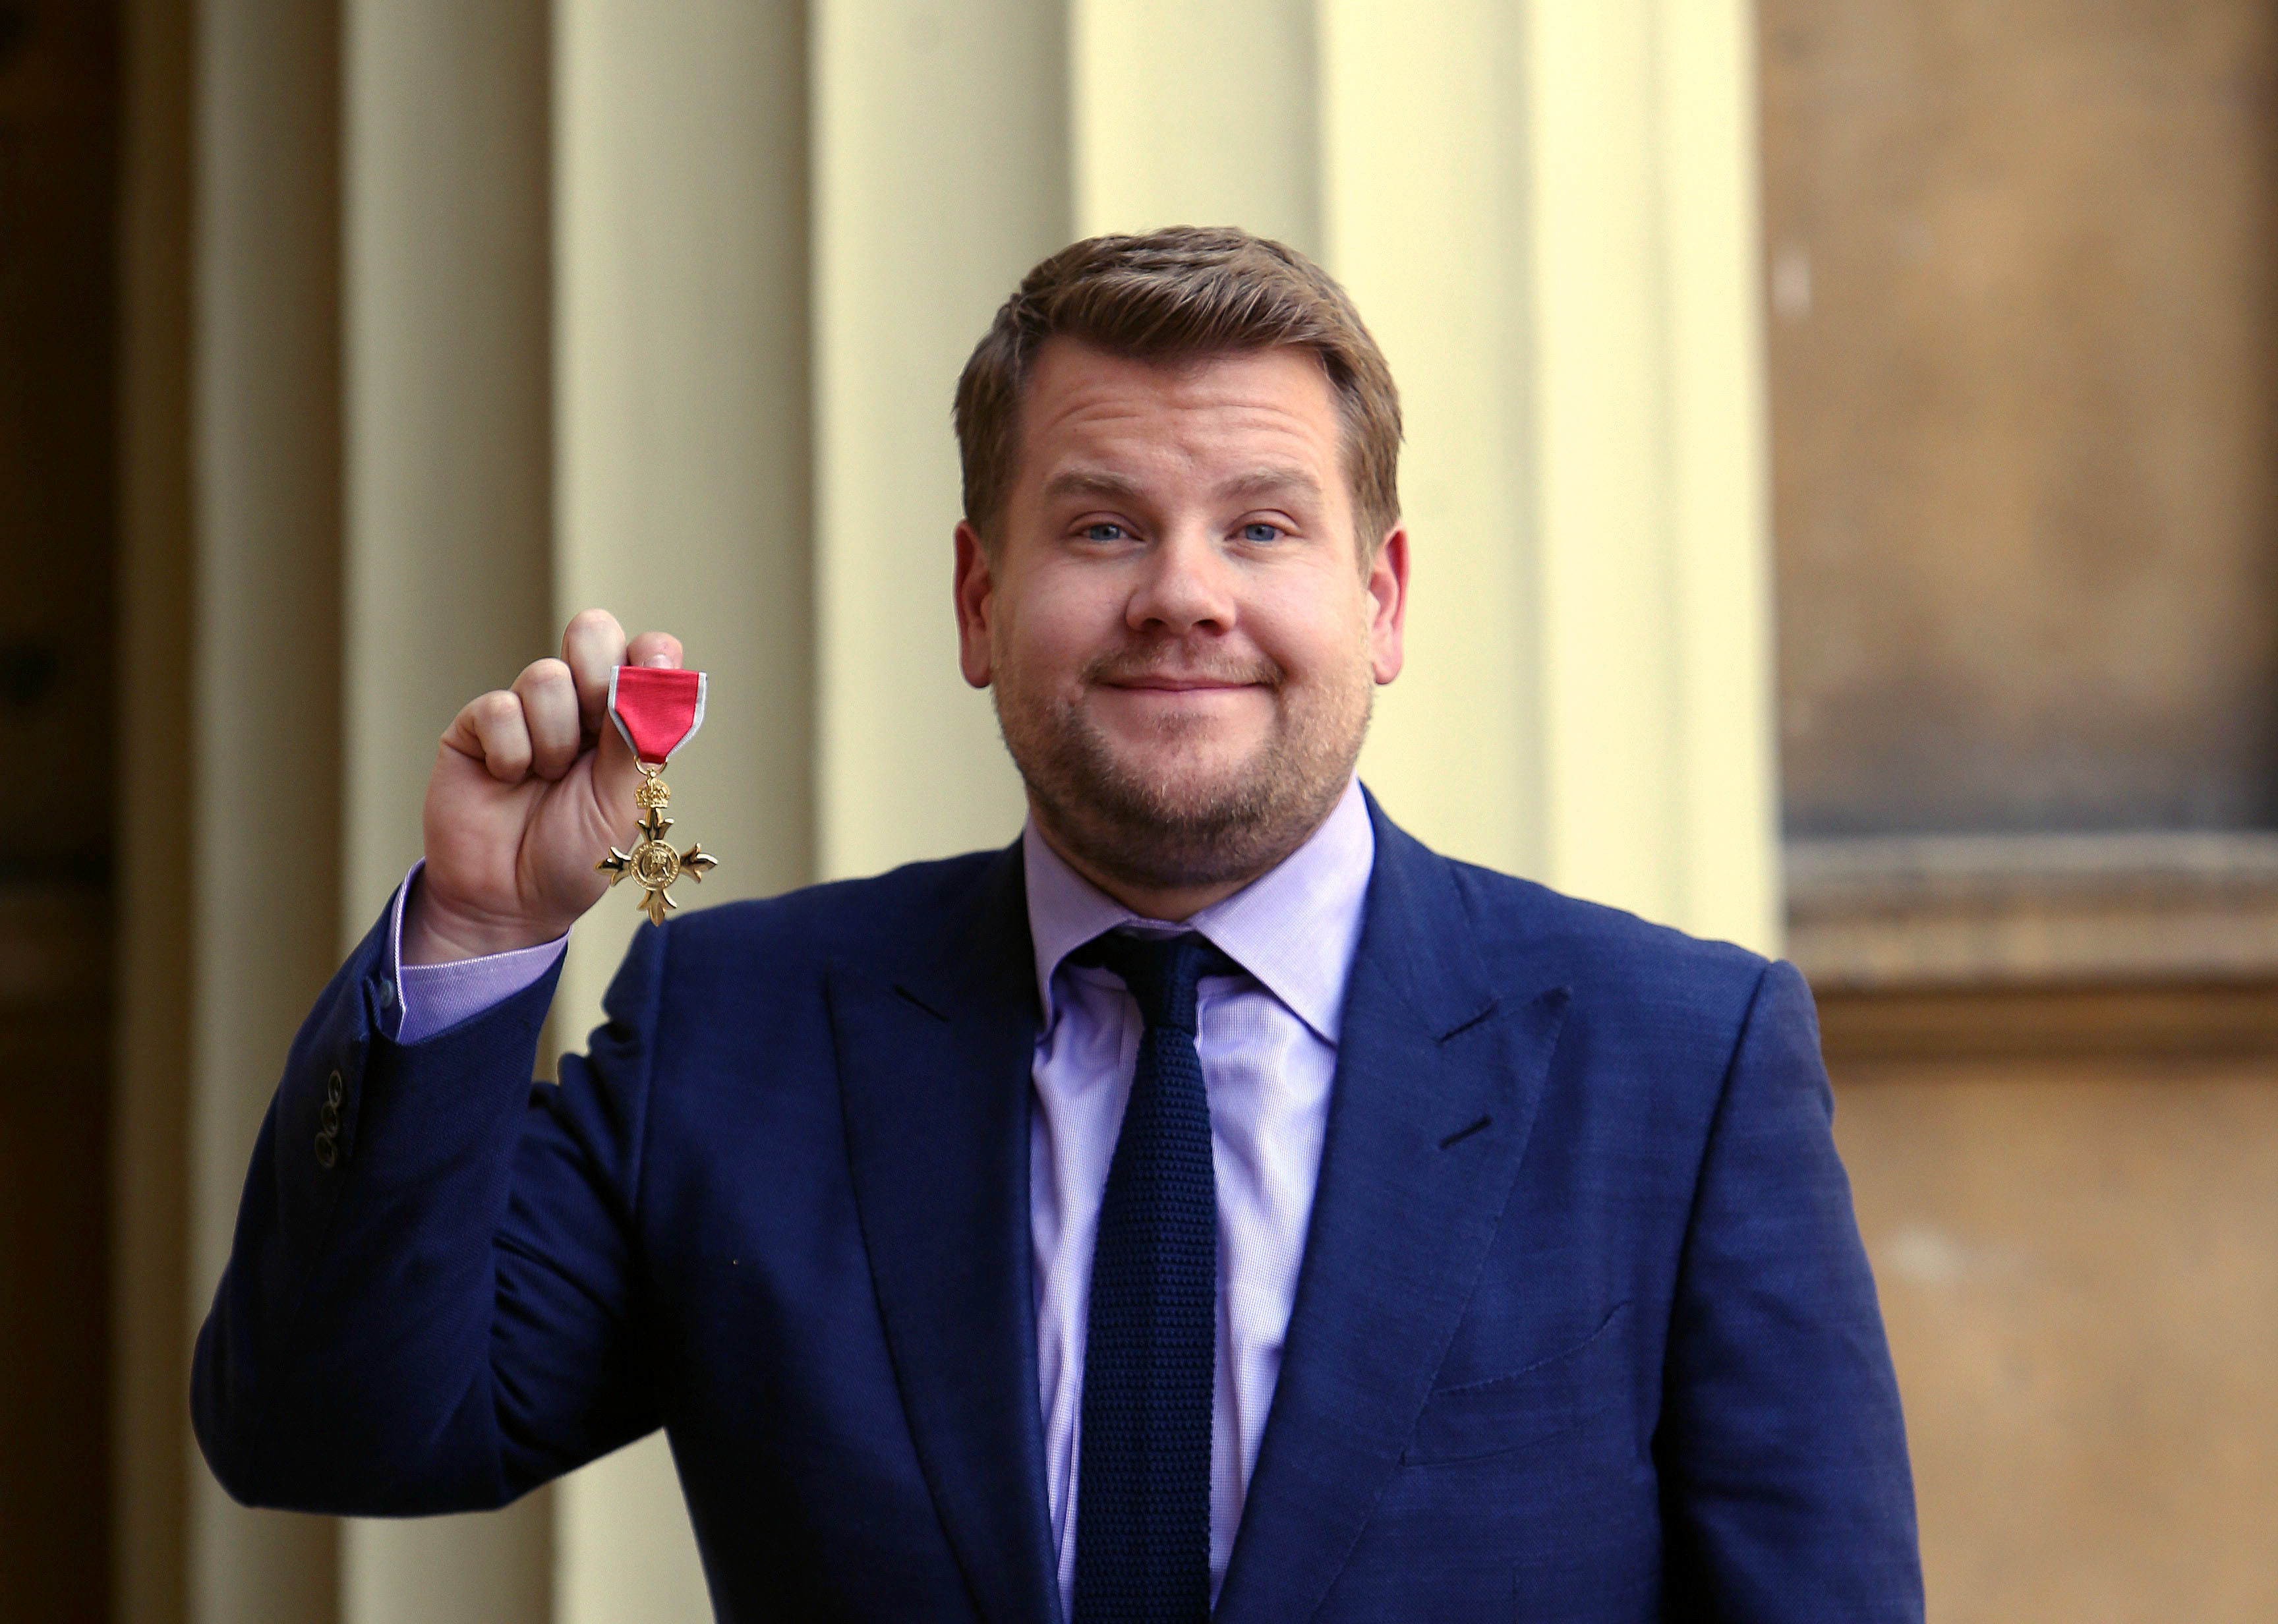 Investitures at Buckingham Palace. James Corden after being awarded an OBE by the Princess Royal at an investiture ceremony at Buckingham Palace, London. Picture date: Thursday June 25, 2015